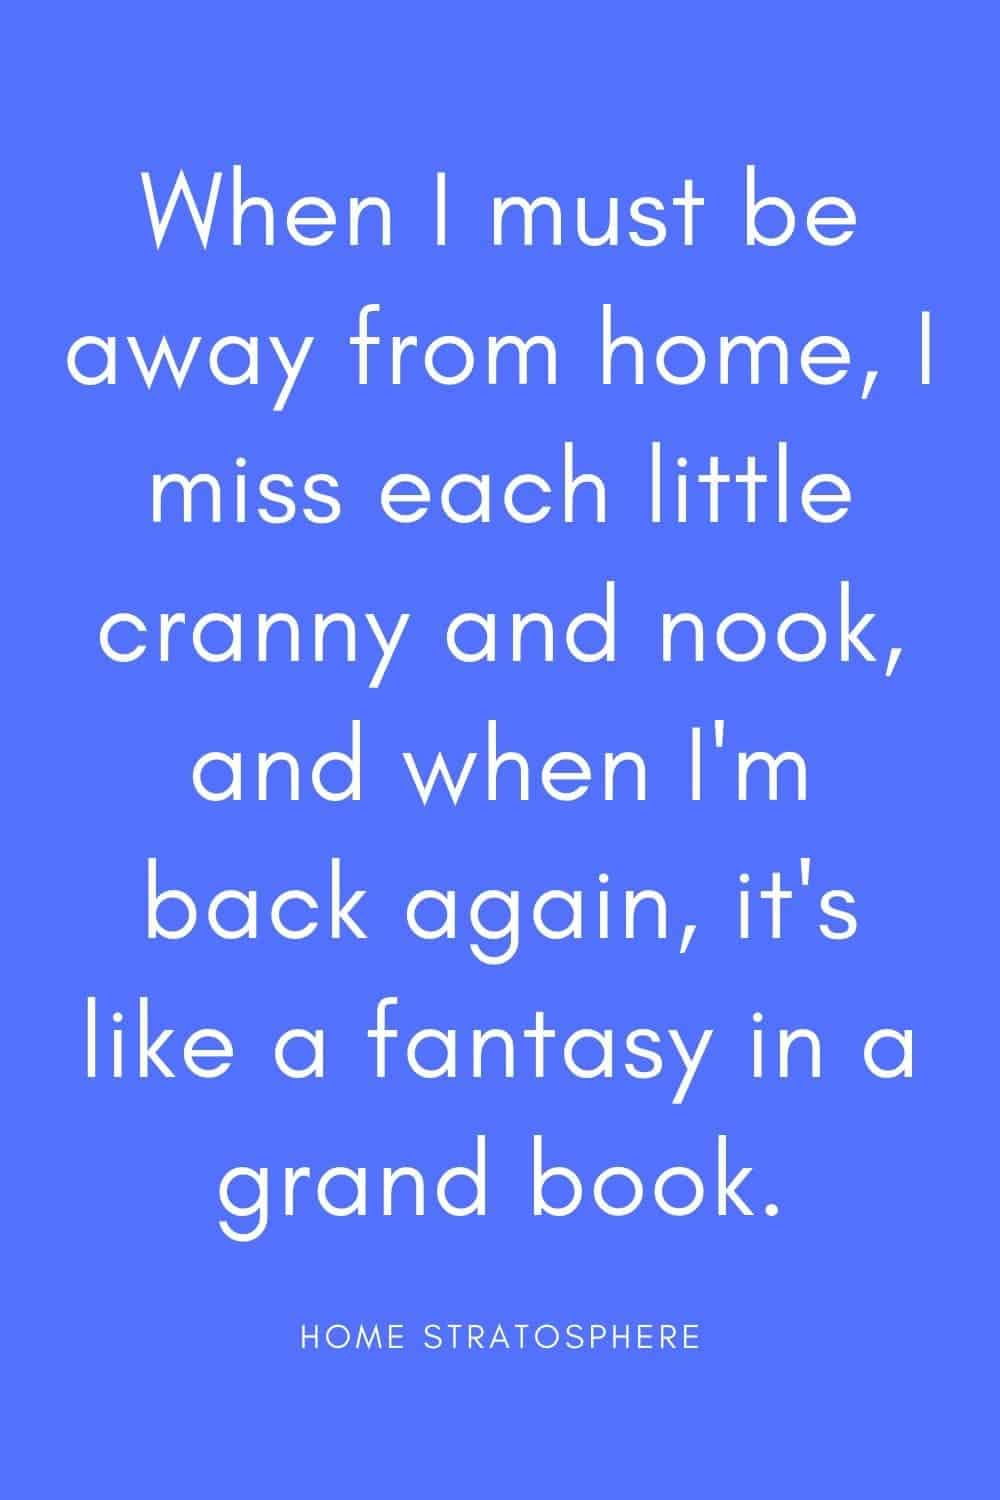 """When I must be away from home, I miss each little cranny and nook, and when I'm back again, it's like a fantasy in a grand book."""